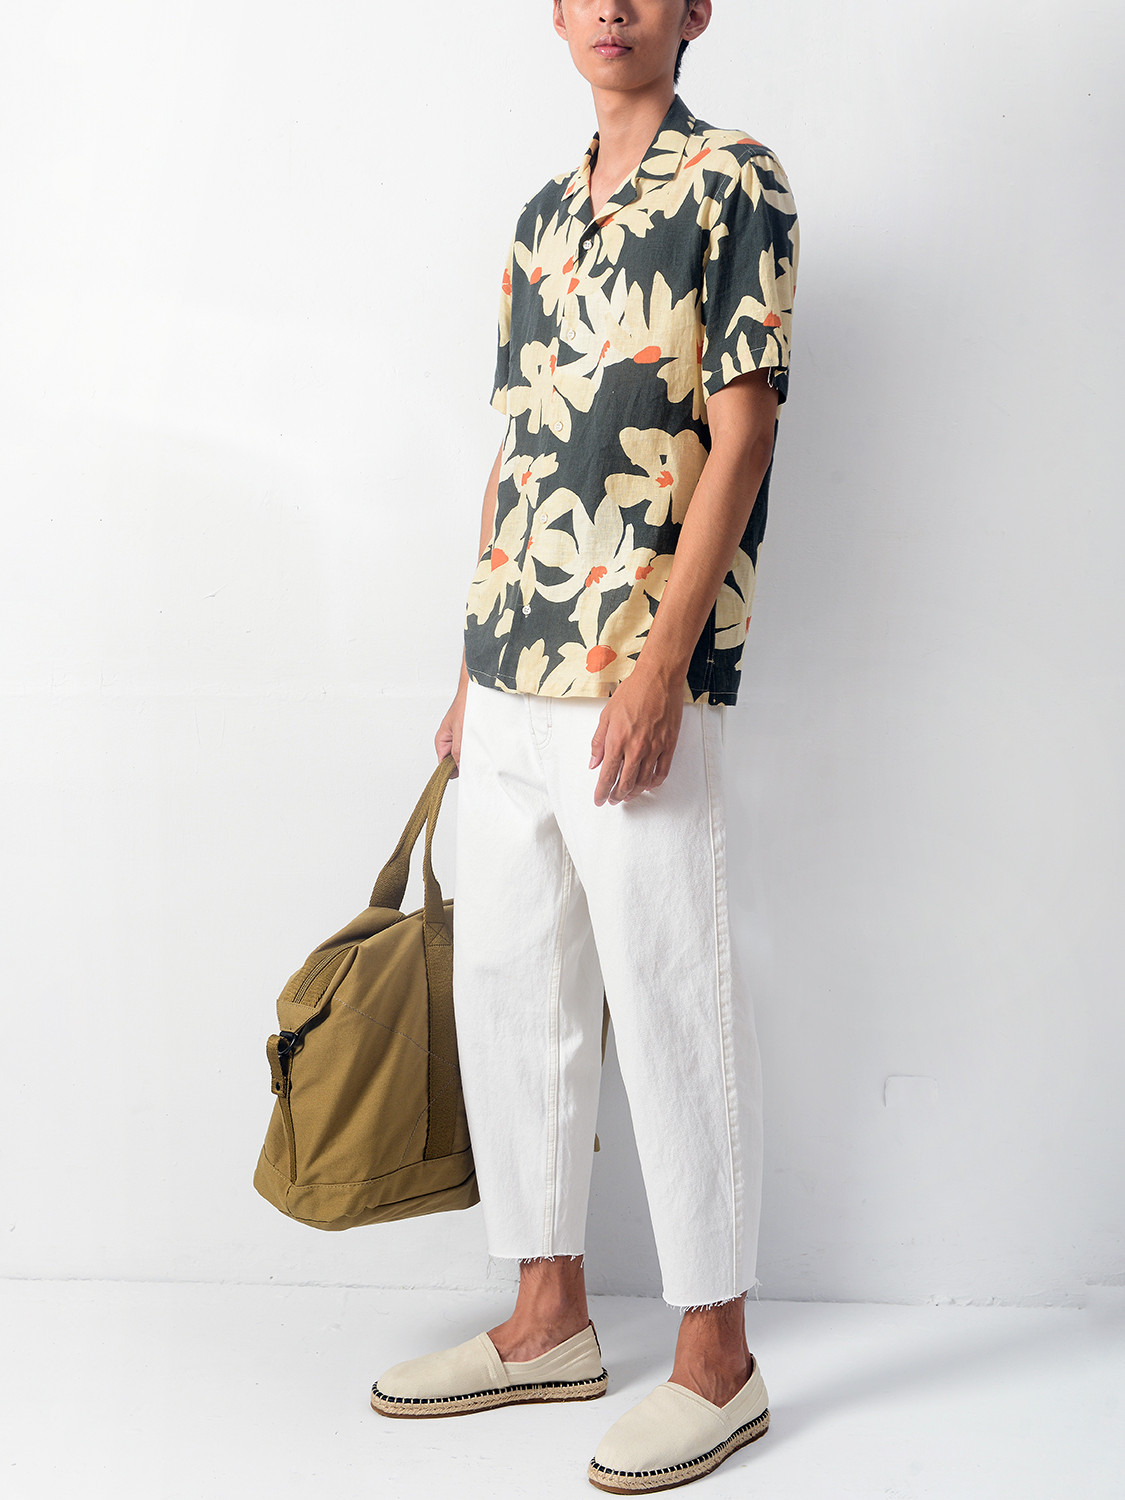 Men's outfit idea for 2021 with green short-sleeved patterned shirt, white jeans, neutral espadrilles. Suitable for spring and summer.